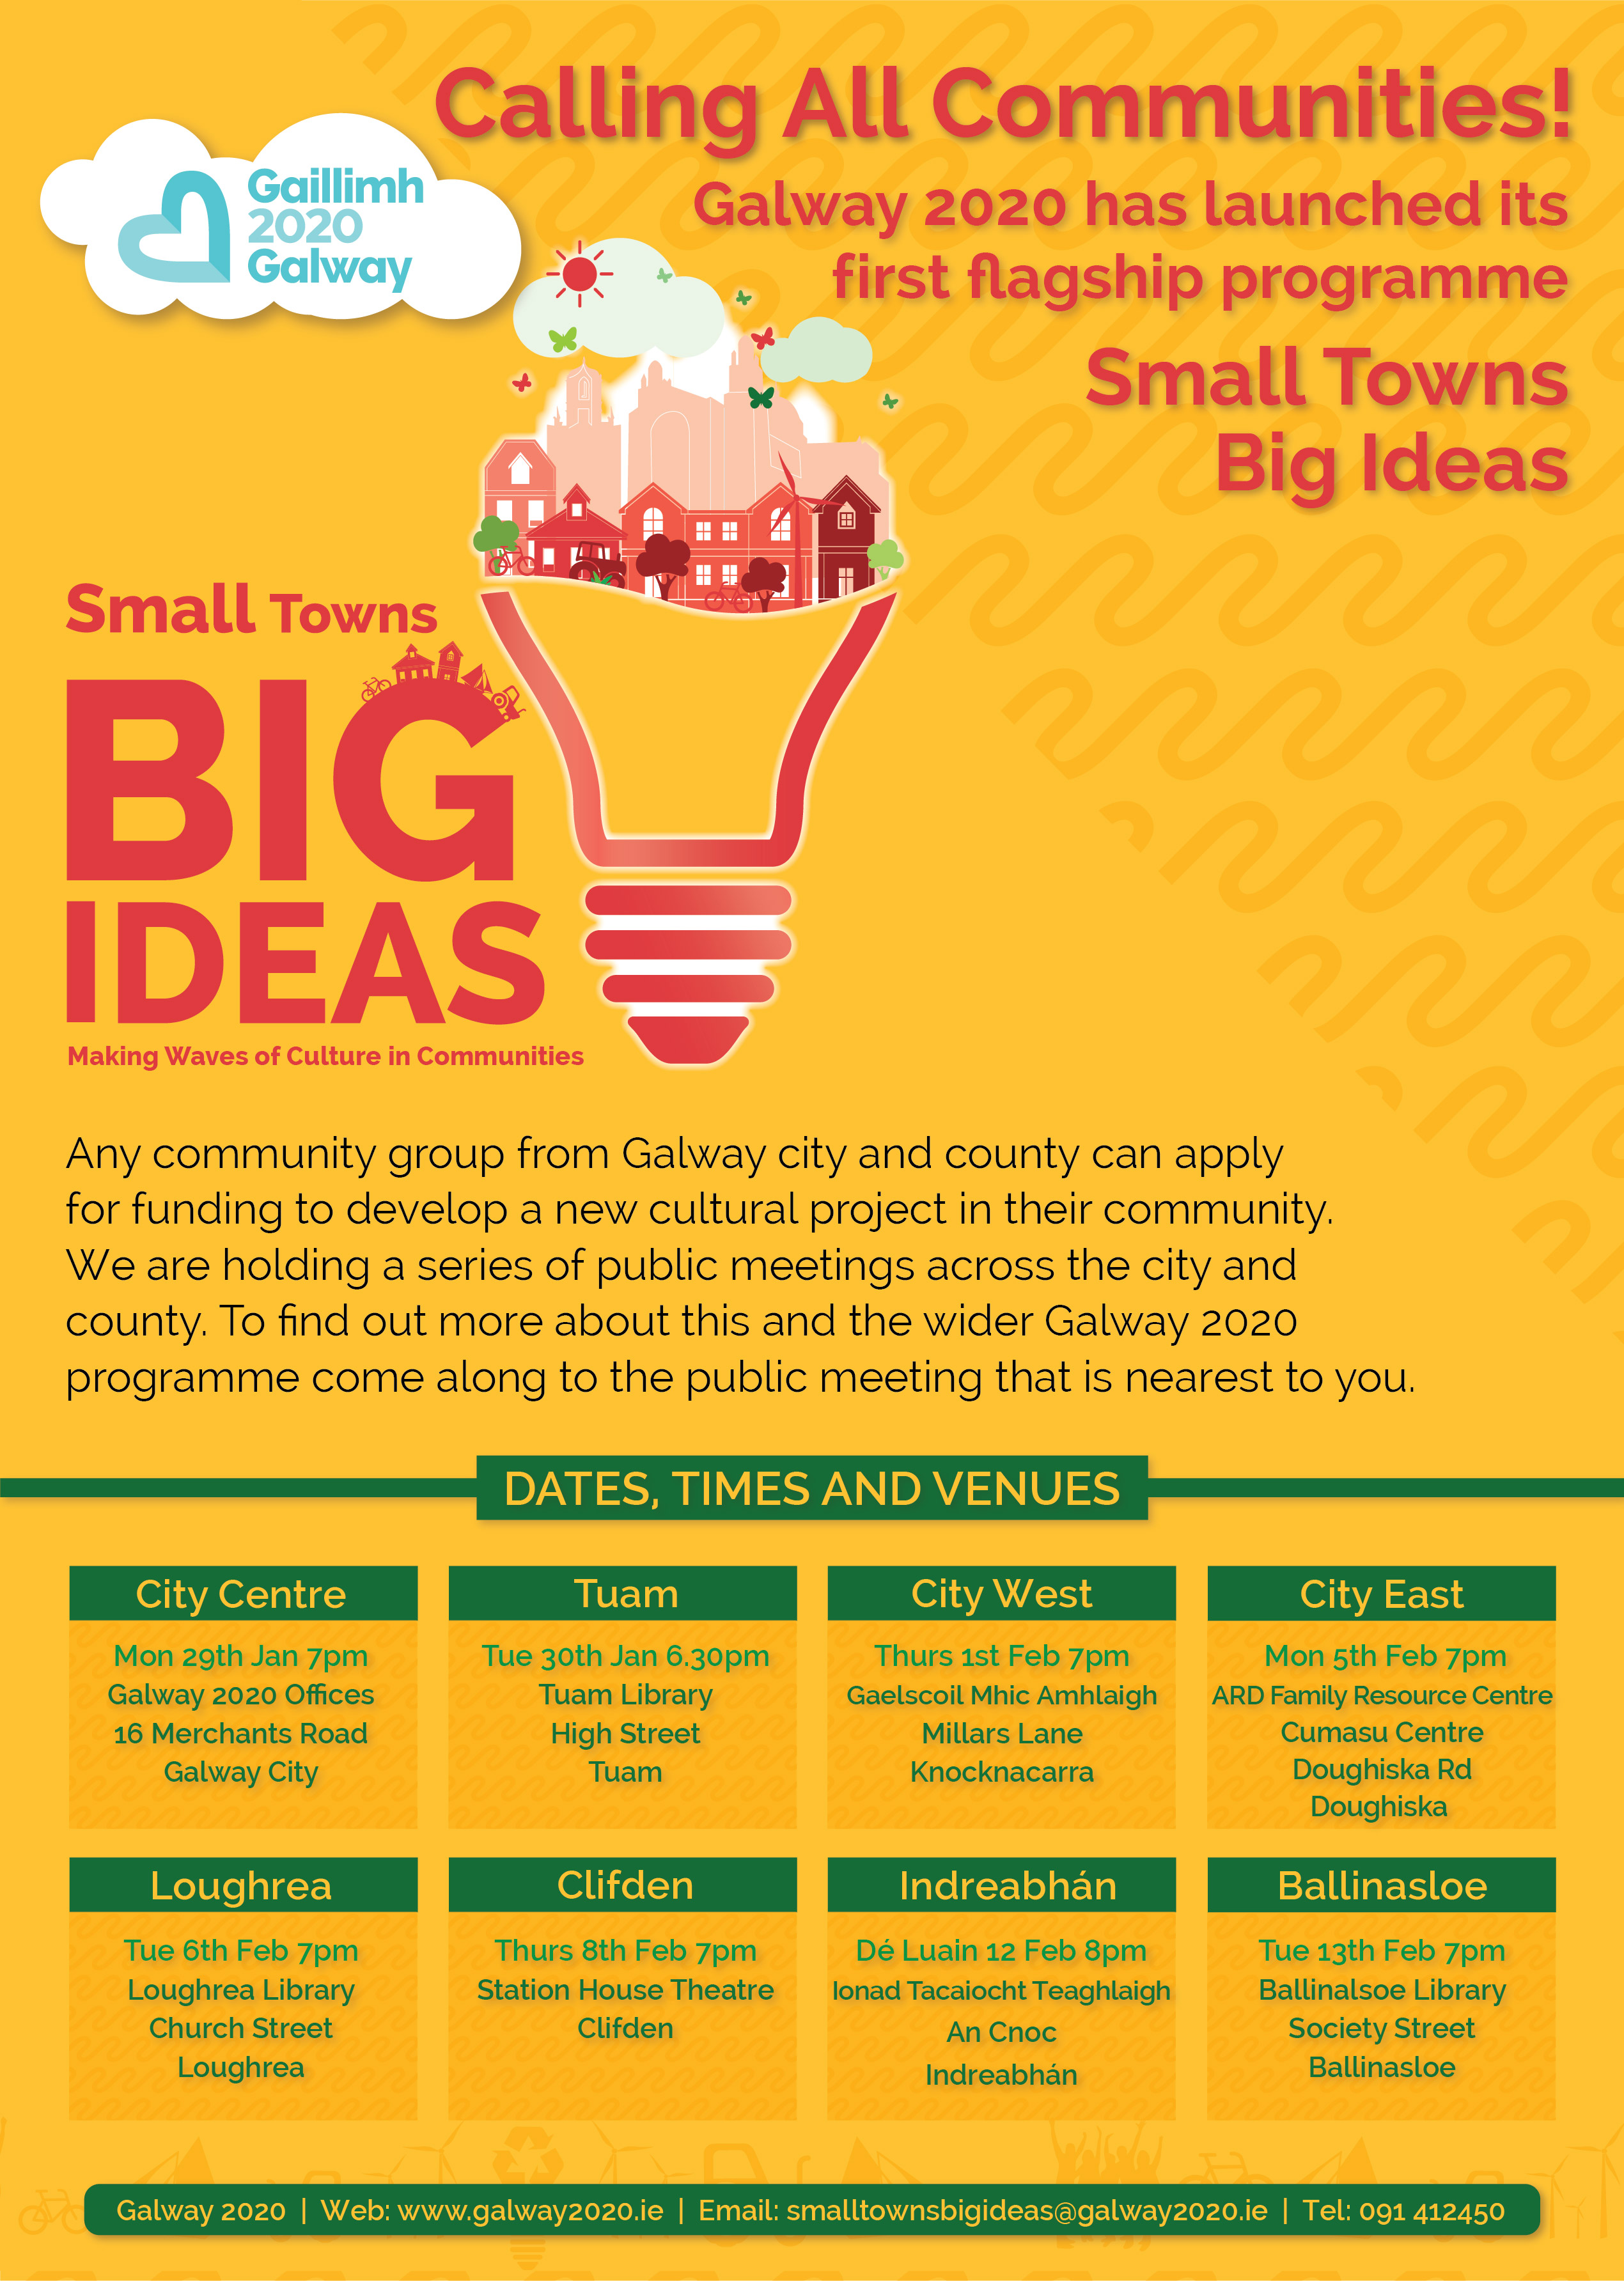 Small Towns Big Ideas